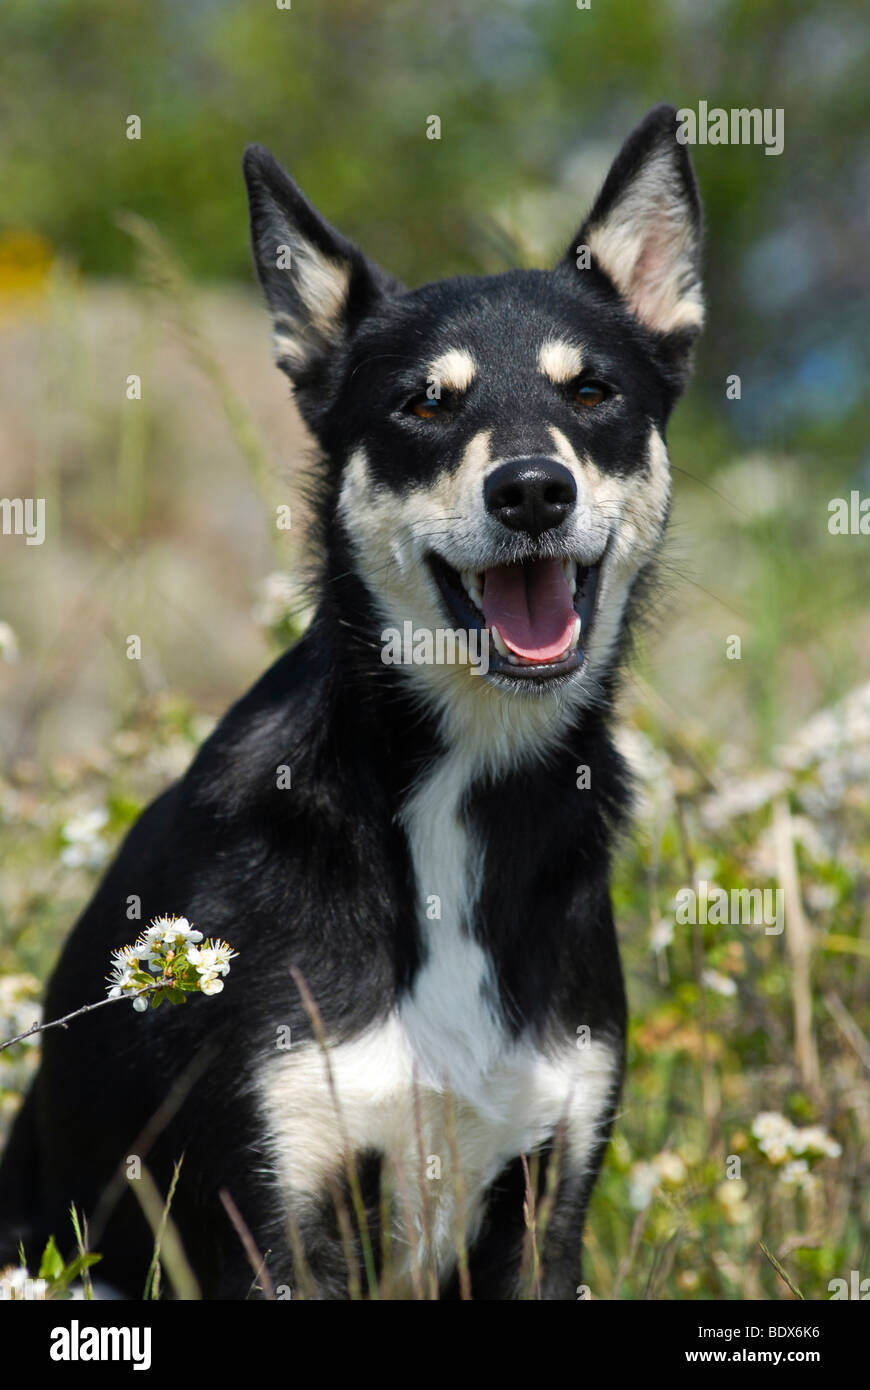 Lapponian Herder, Lapinporokoira or Lapp Reindeer dog sitting in a flowery meadow - Stock Image